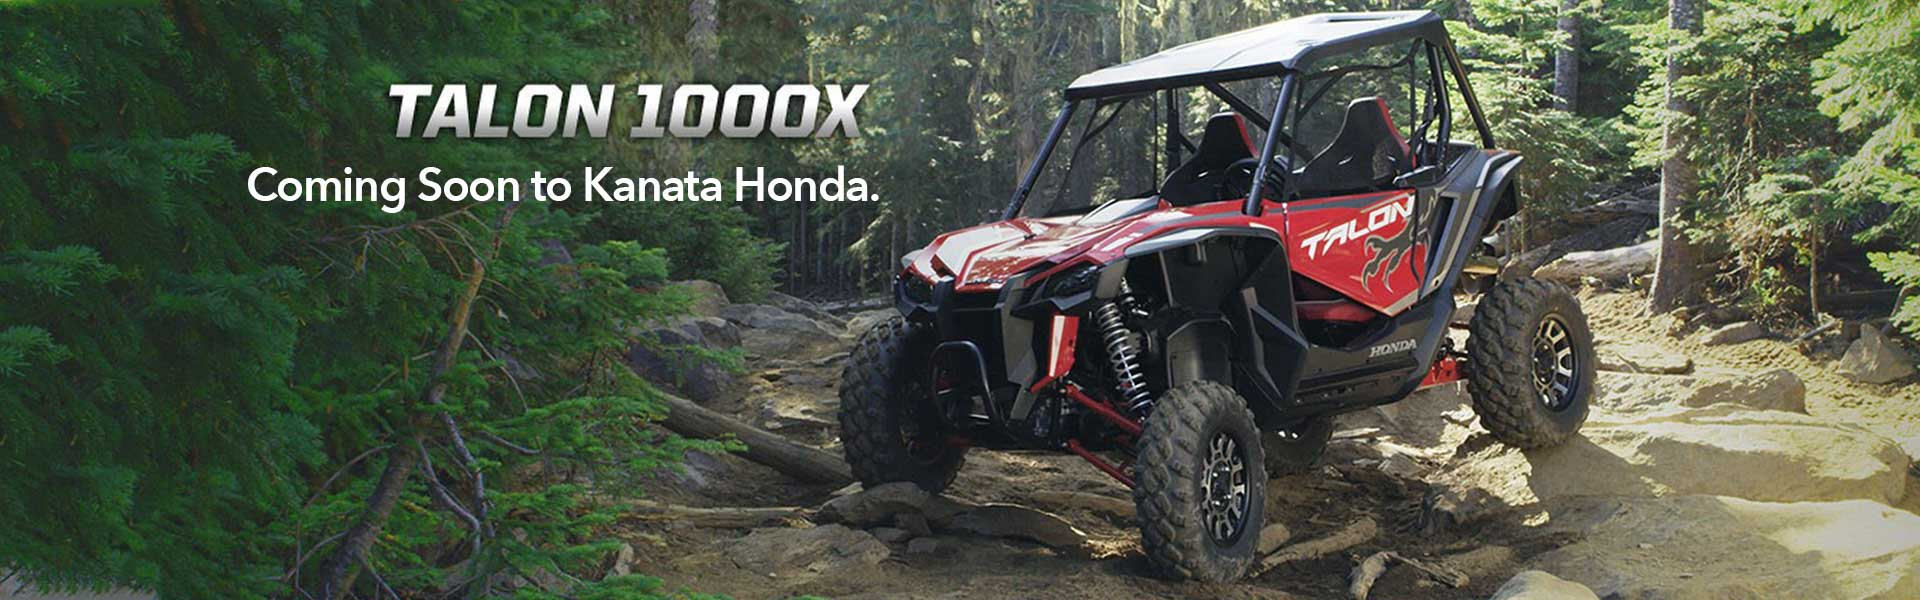 New Talon 1000X coming soon to Kanata Honda